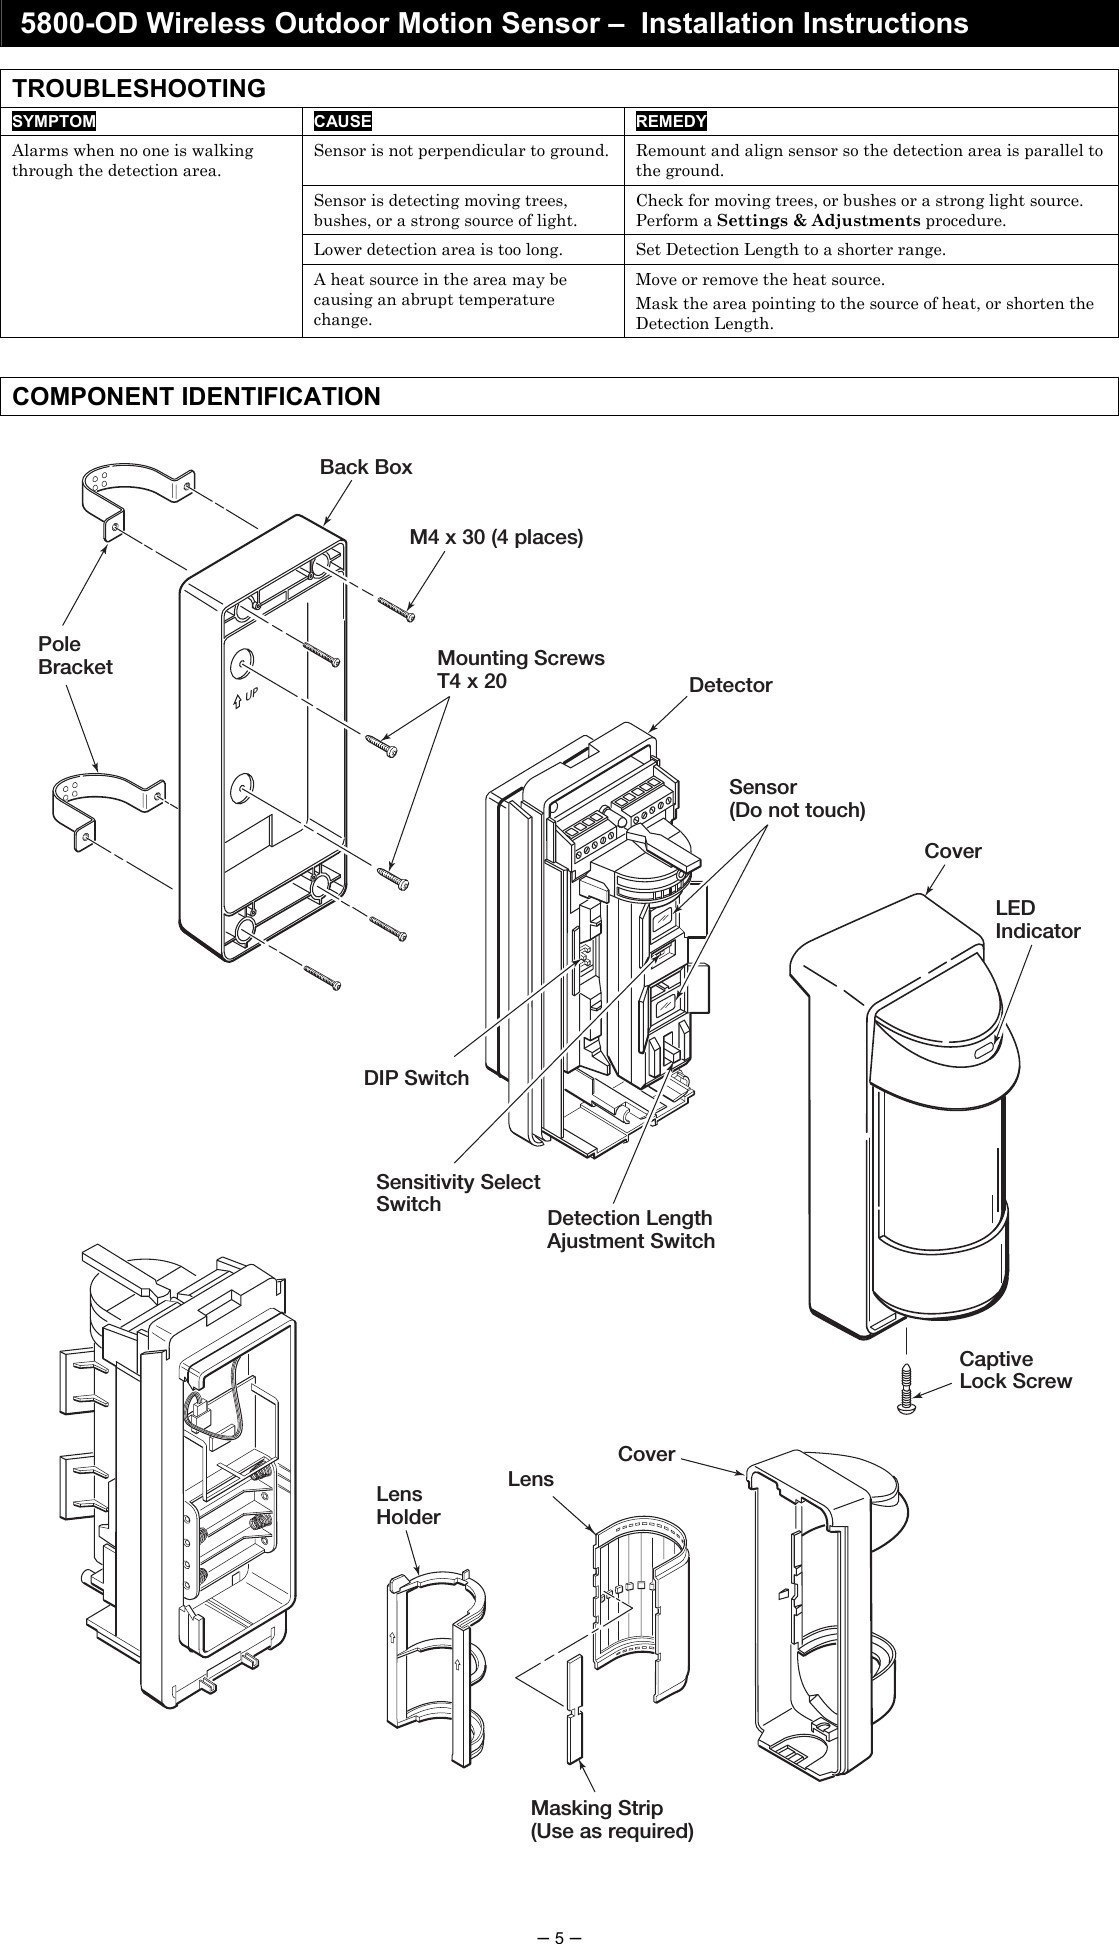 Wiring Diagram for 2002 toyota Tacoma Diagram] Fire Detectors Wiring Diagram Full Version Hd Of Wiring Diagram for 2002 toyota Tacoma